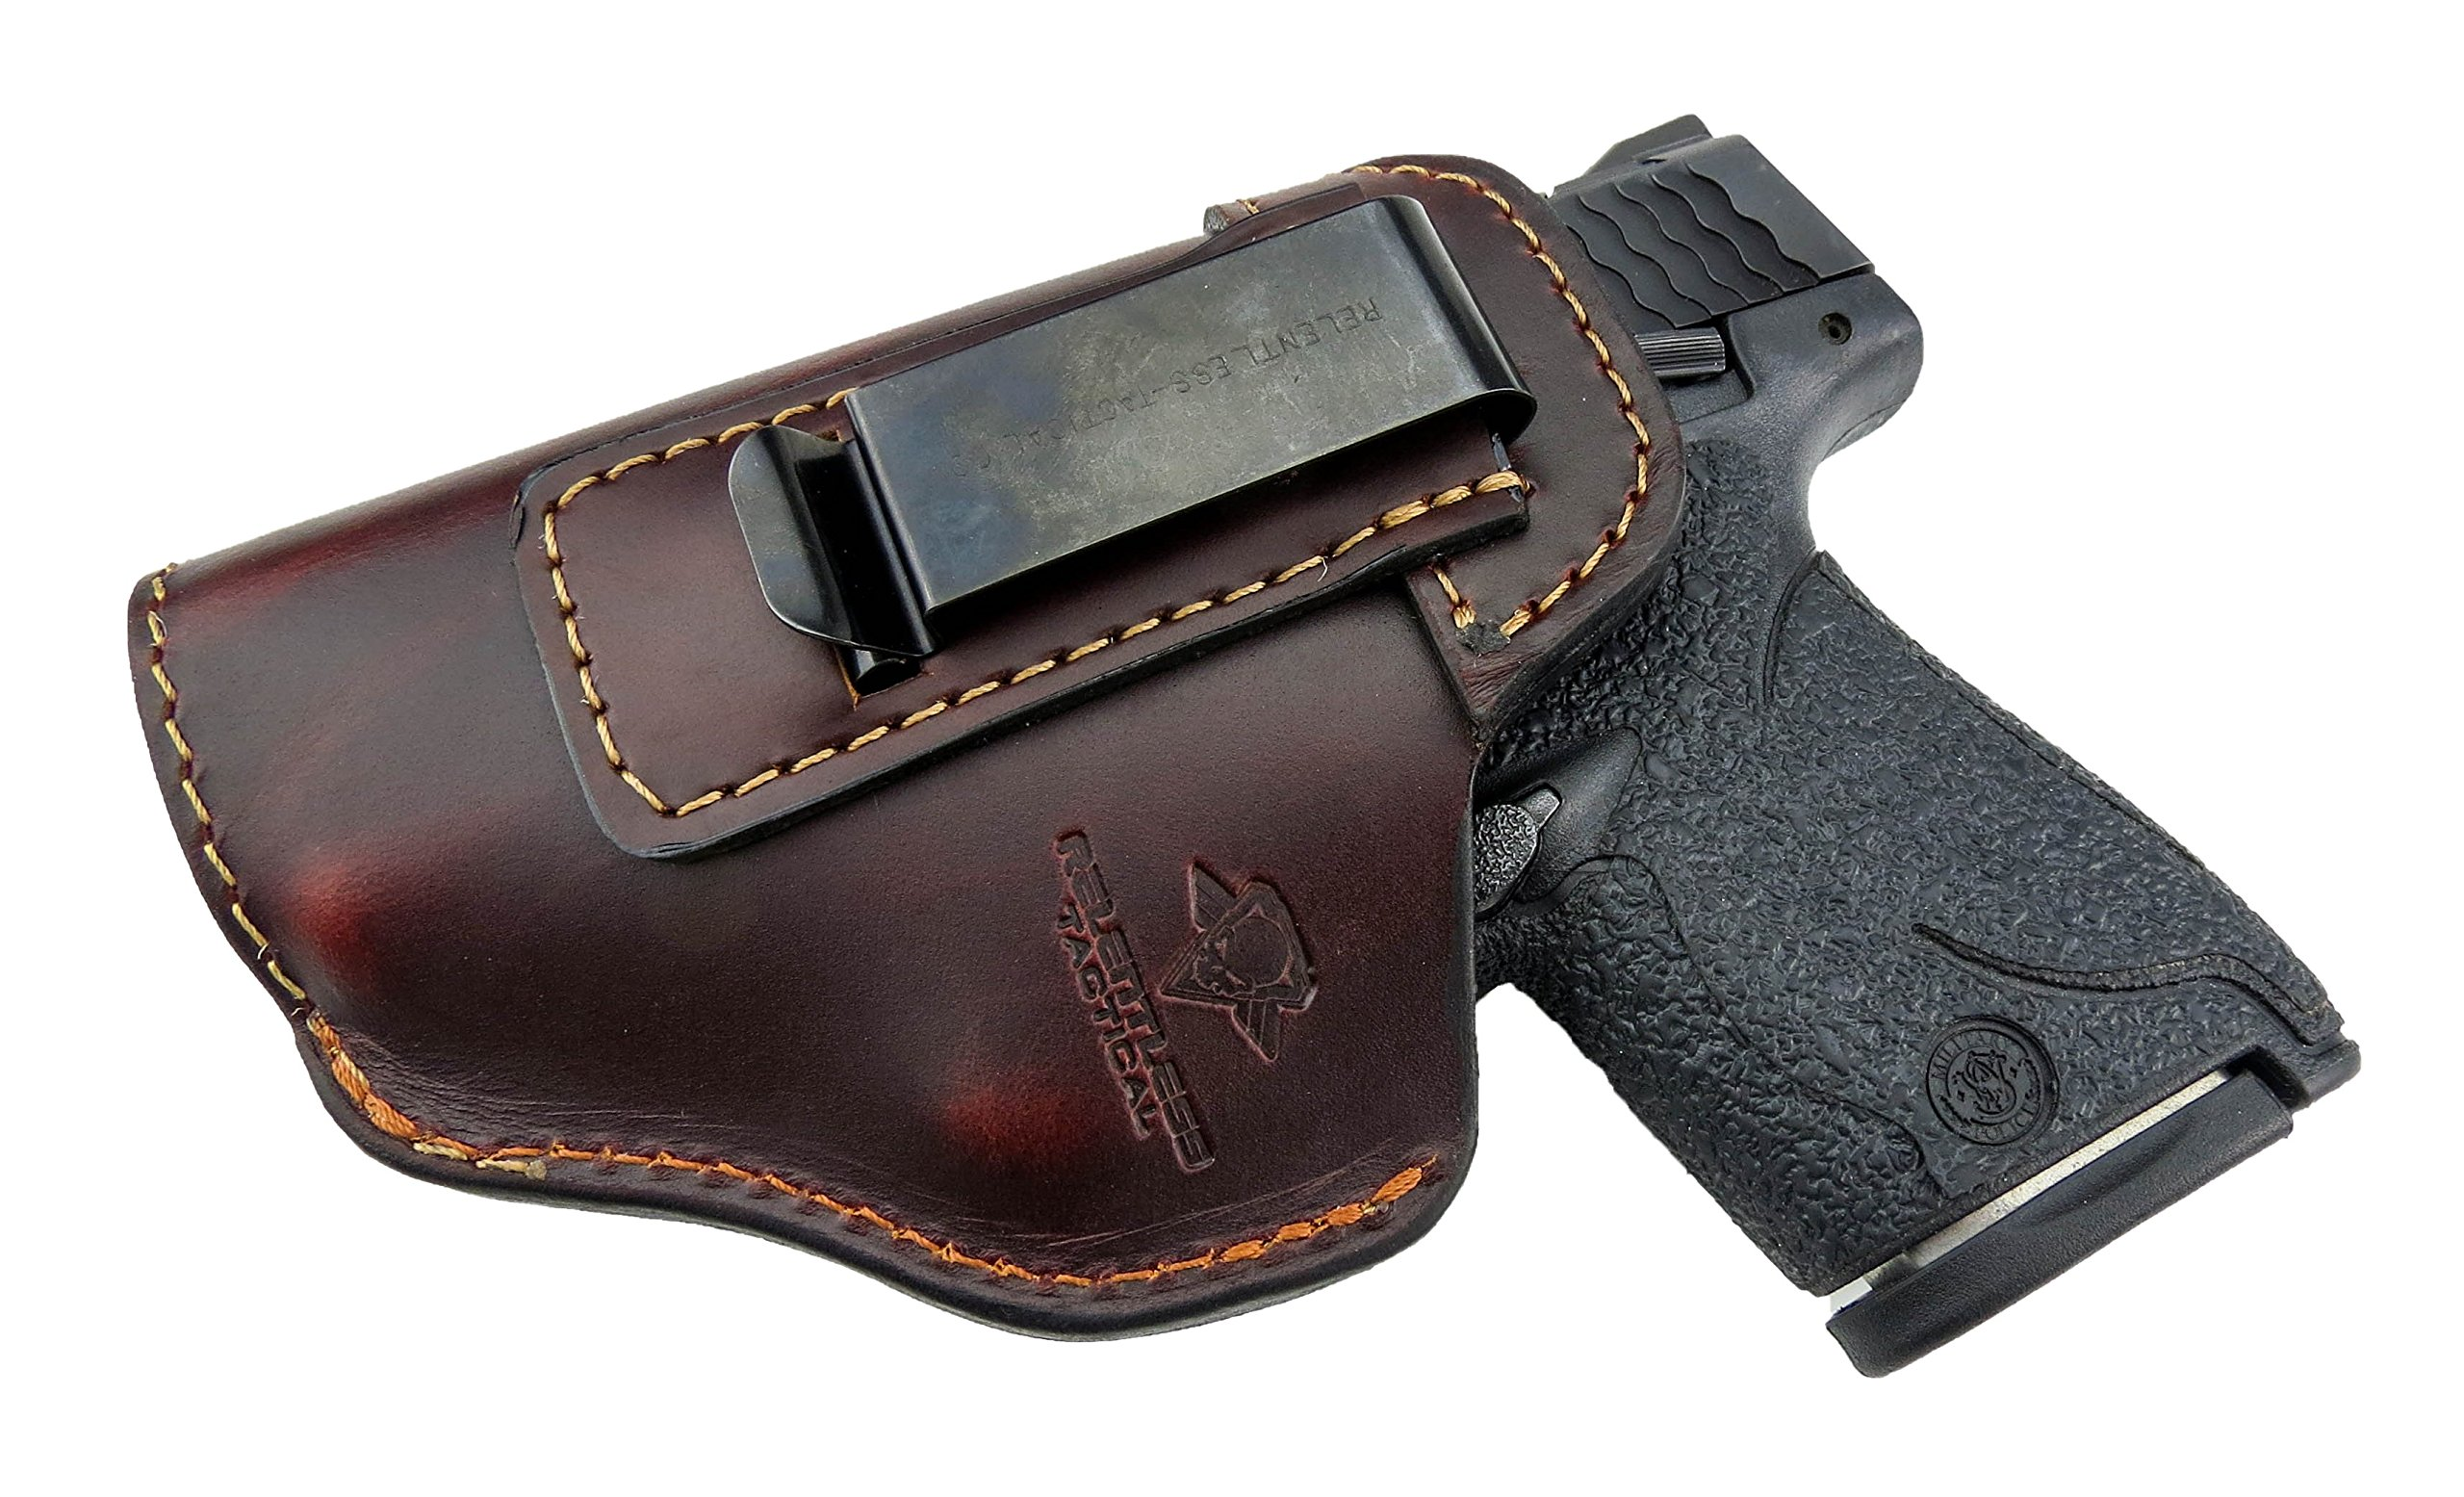 Relentless Tactical The Defender Leather IWB Holster - Made in USA - for S&W M&P Shield - Glock 17 19 22 23 32 33 / Springfield XD & XDS/Plus All Similar Sized Handguns - Brown - Left Handed by Relentless Tactical